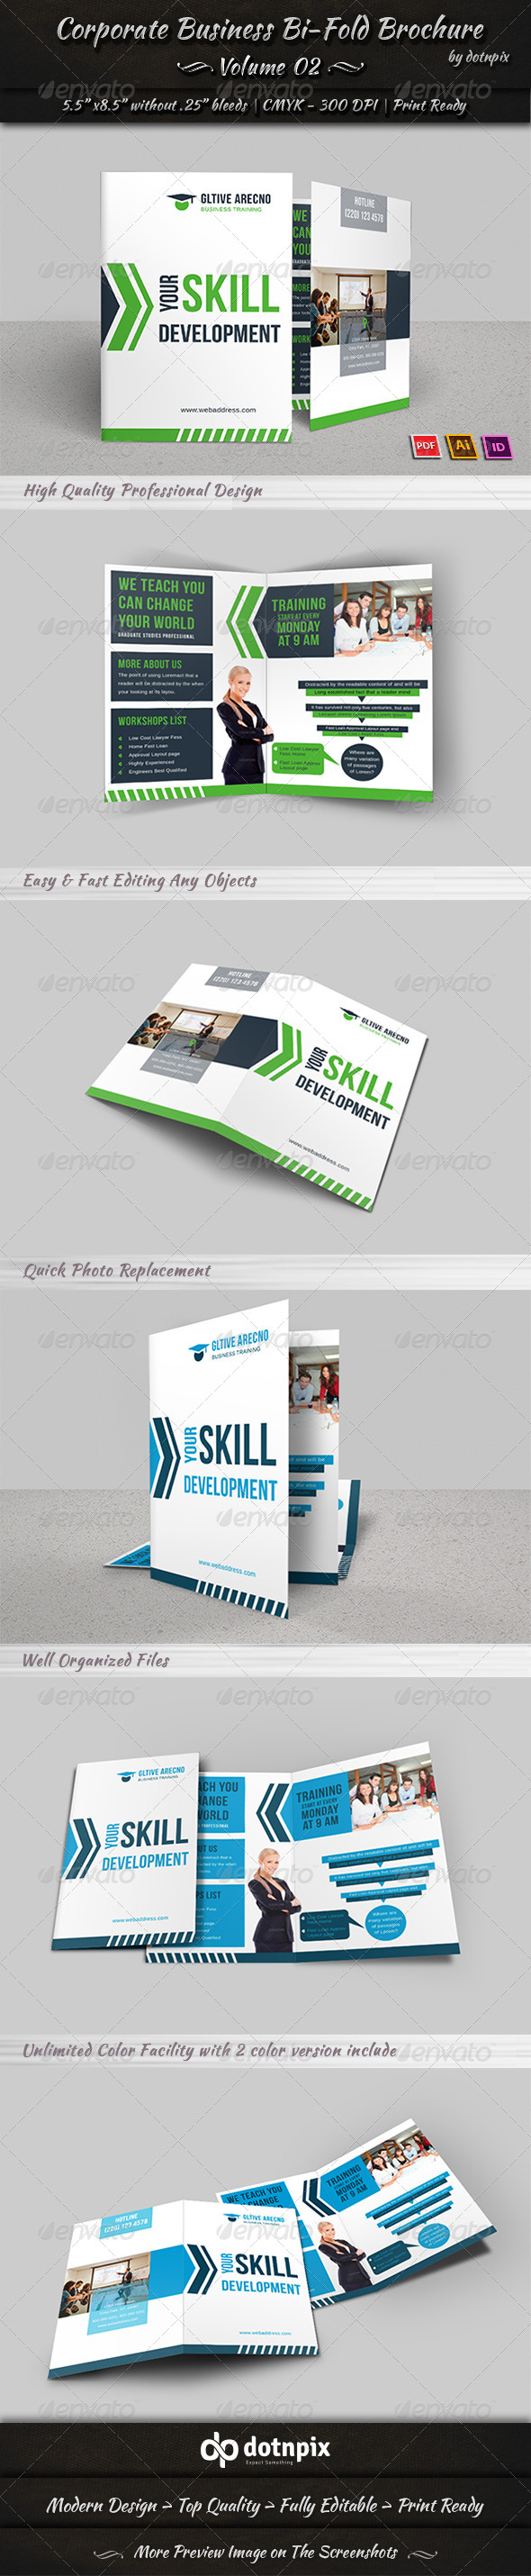 GraphicRiver Corporate Business Bi-Fold Brochure Volume 2 7747419